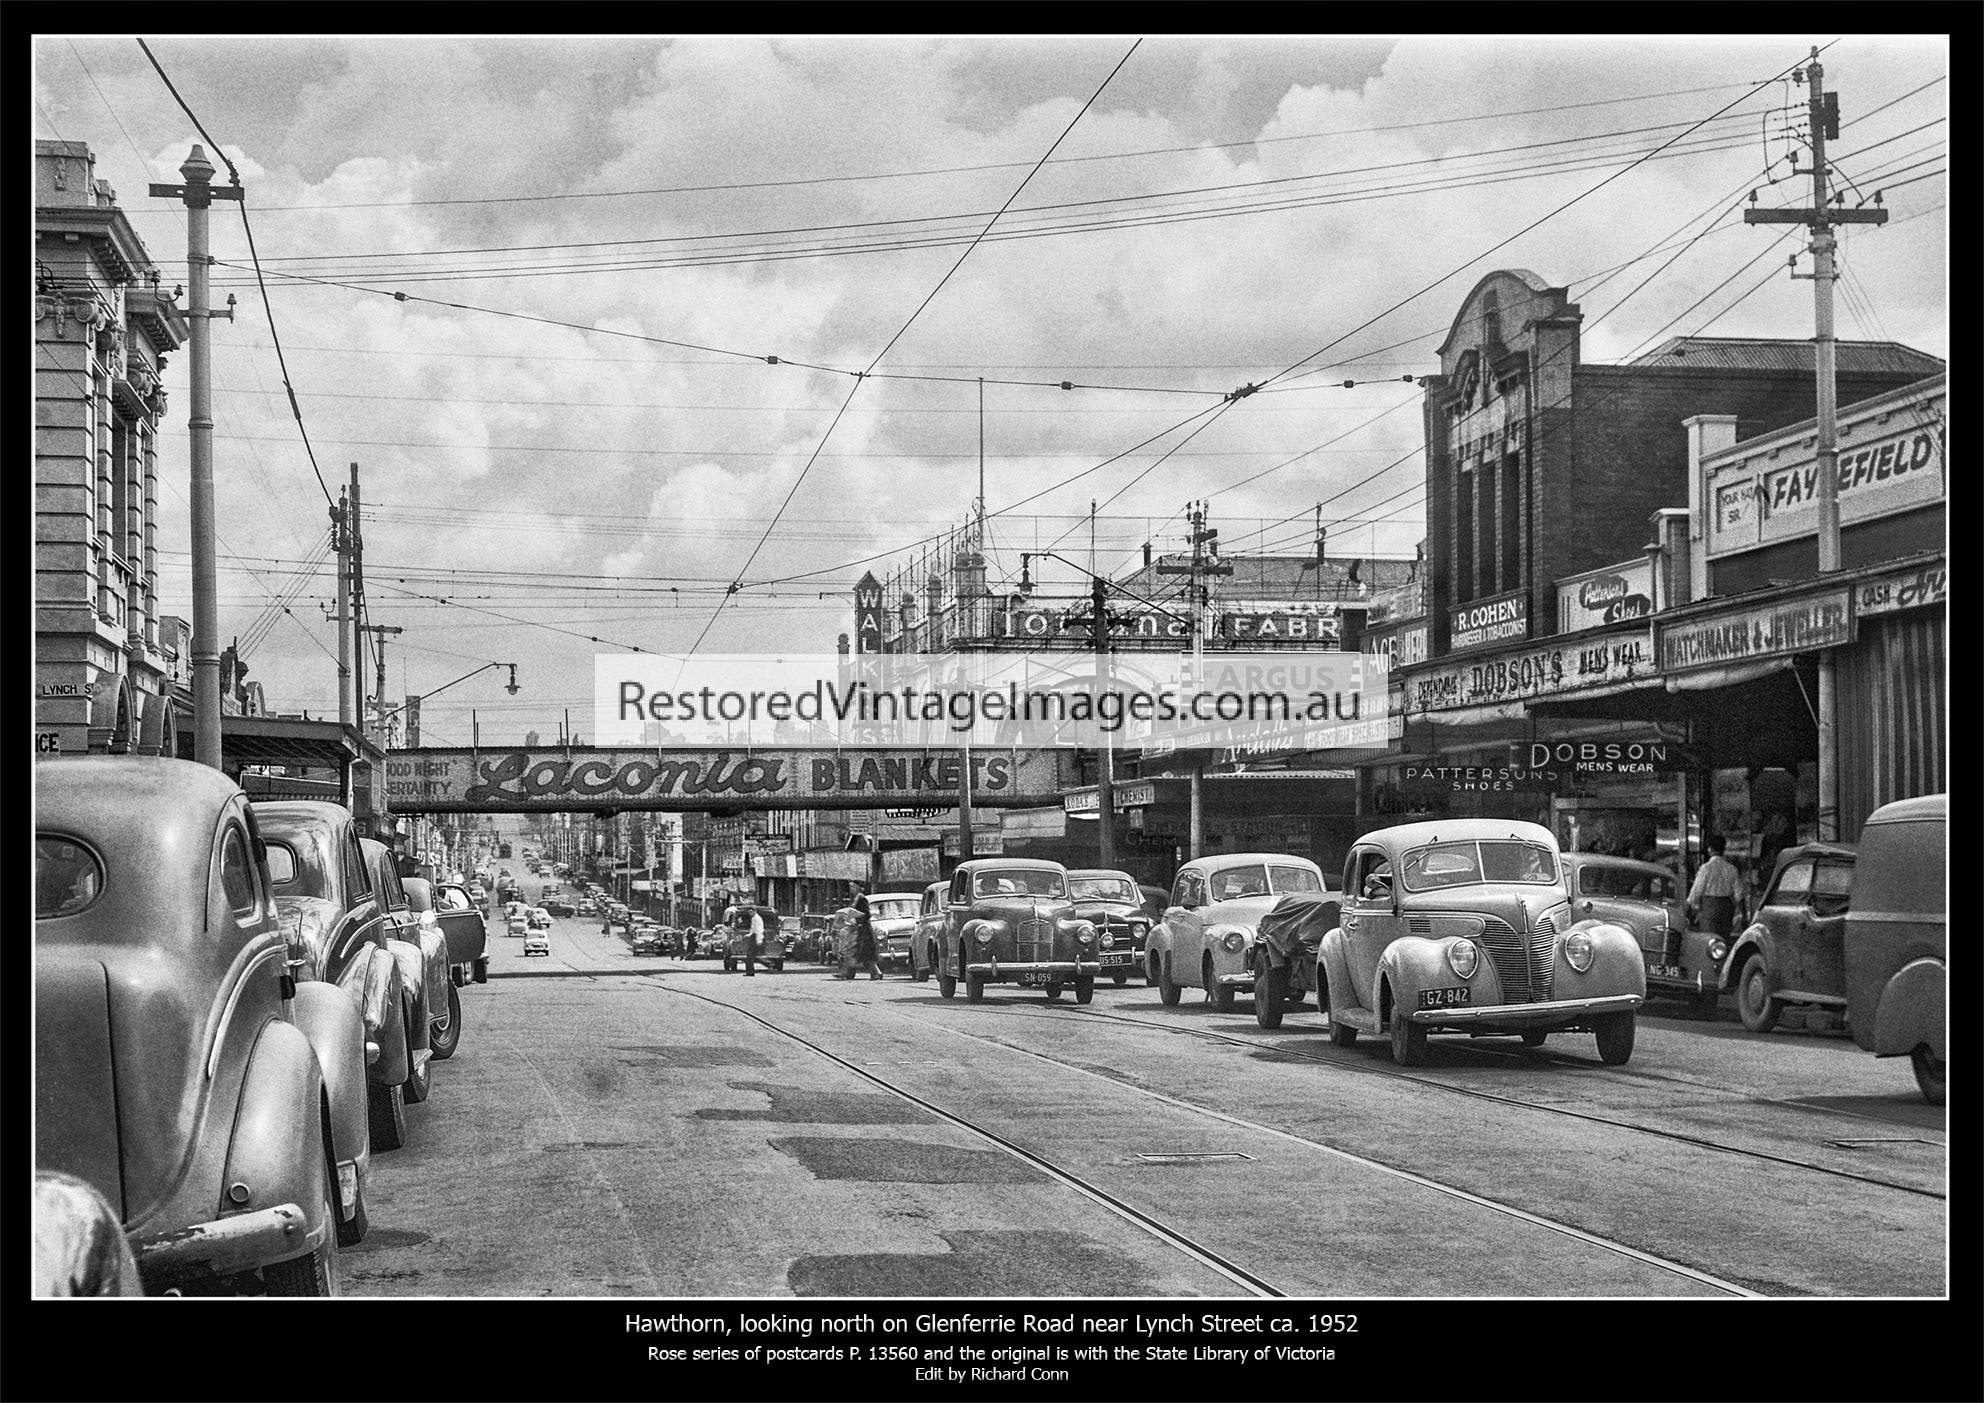 Hawthorn, Looking North On Glenferrie Road Ca. 1952